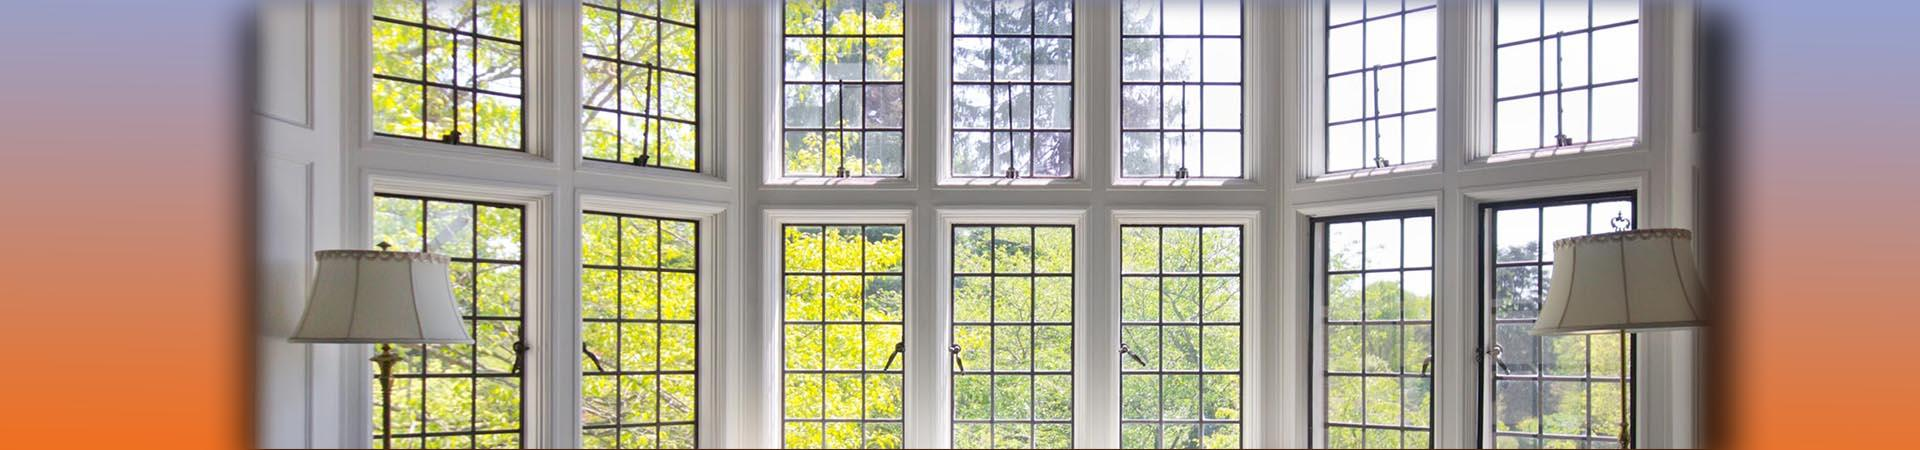 Your Source for Replacement Windows, Bay Windows, Bow Windows, Glass Block Windows and Awning Windows in Raleigh, NC